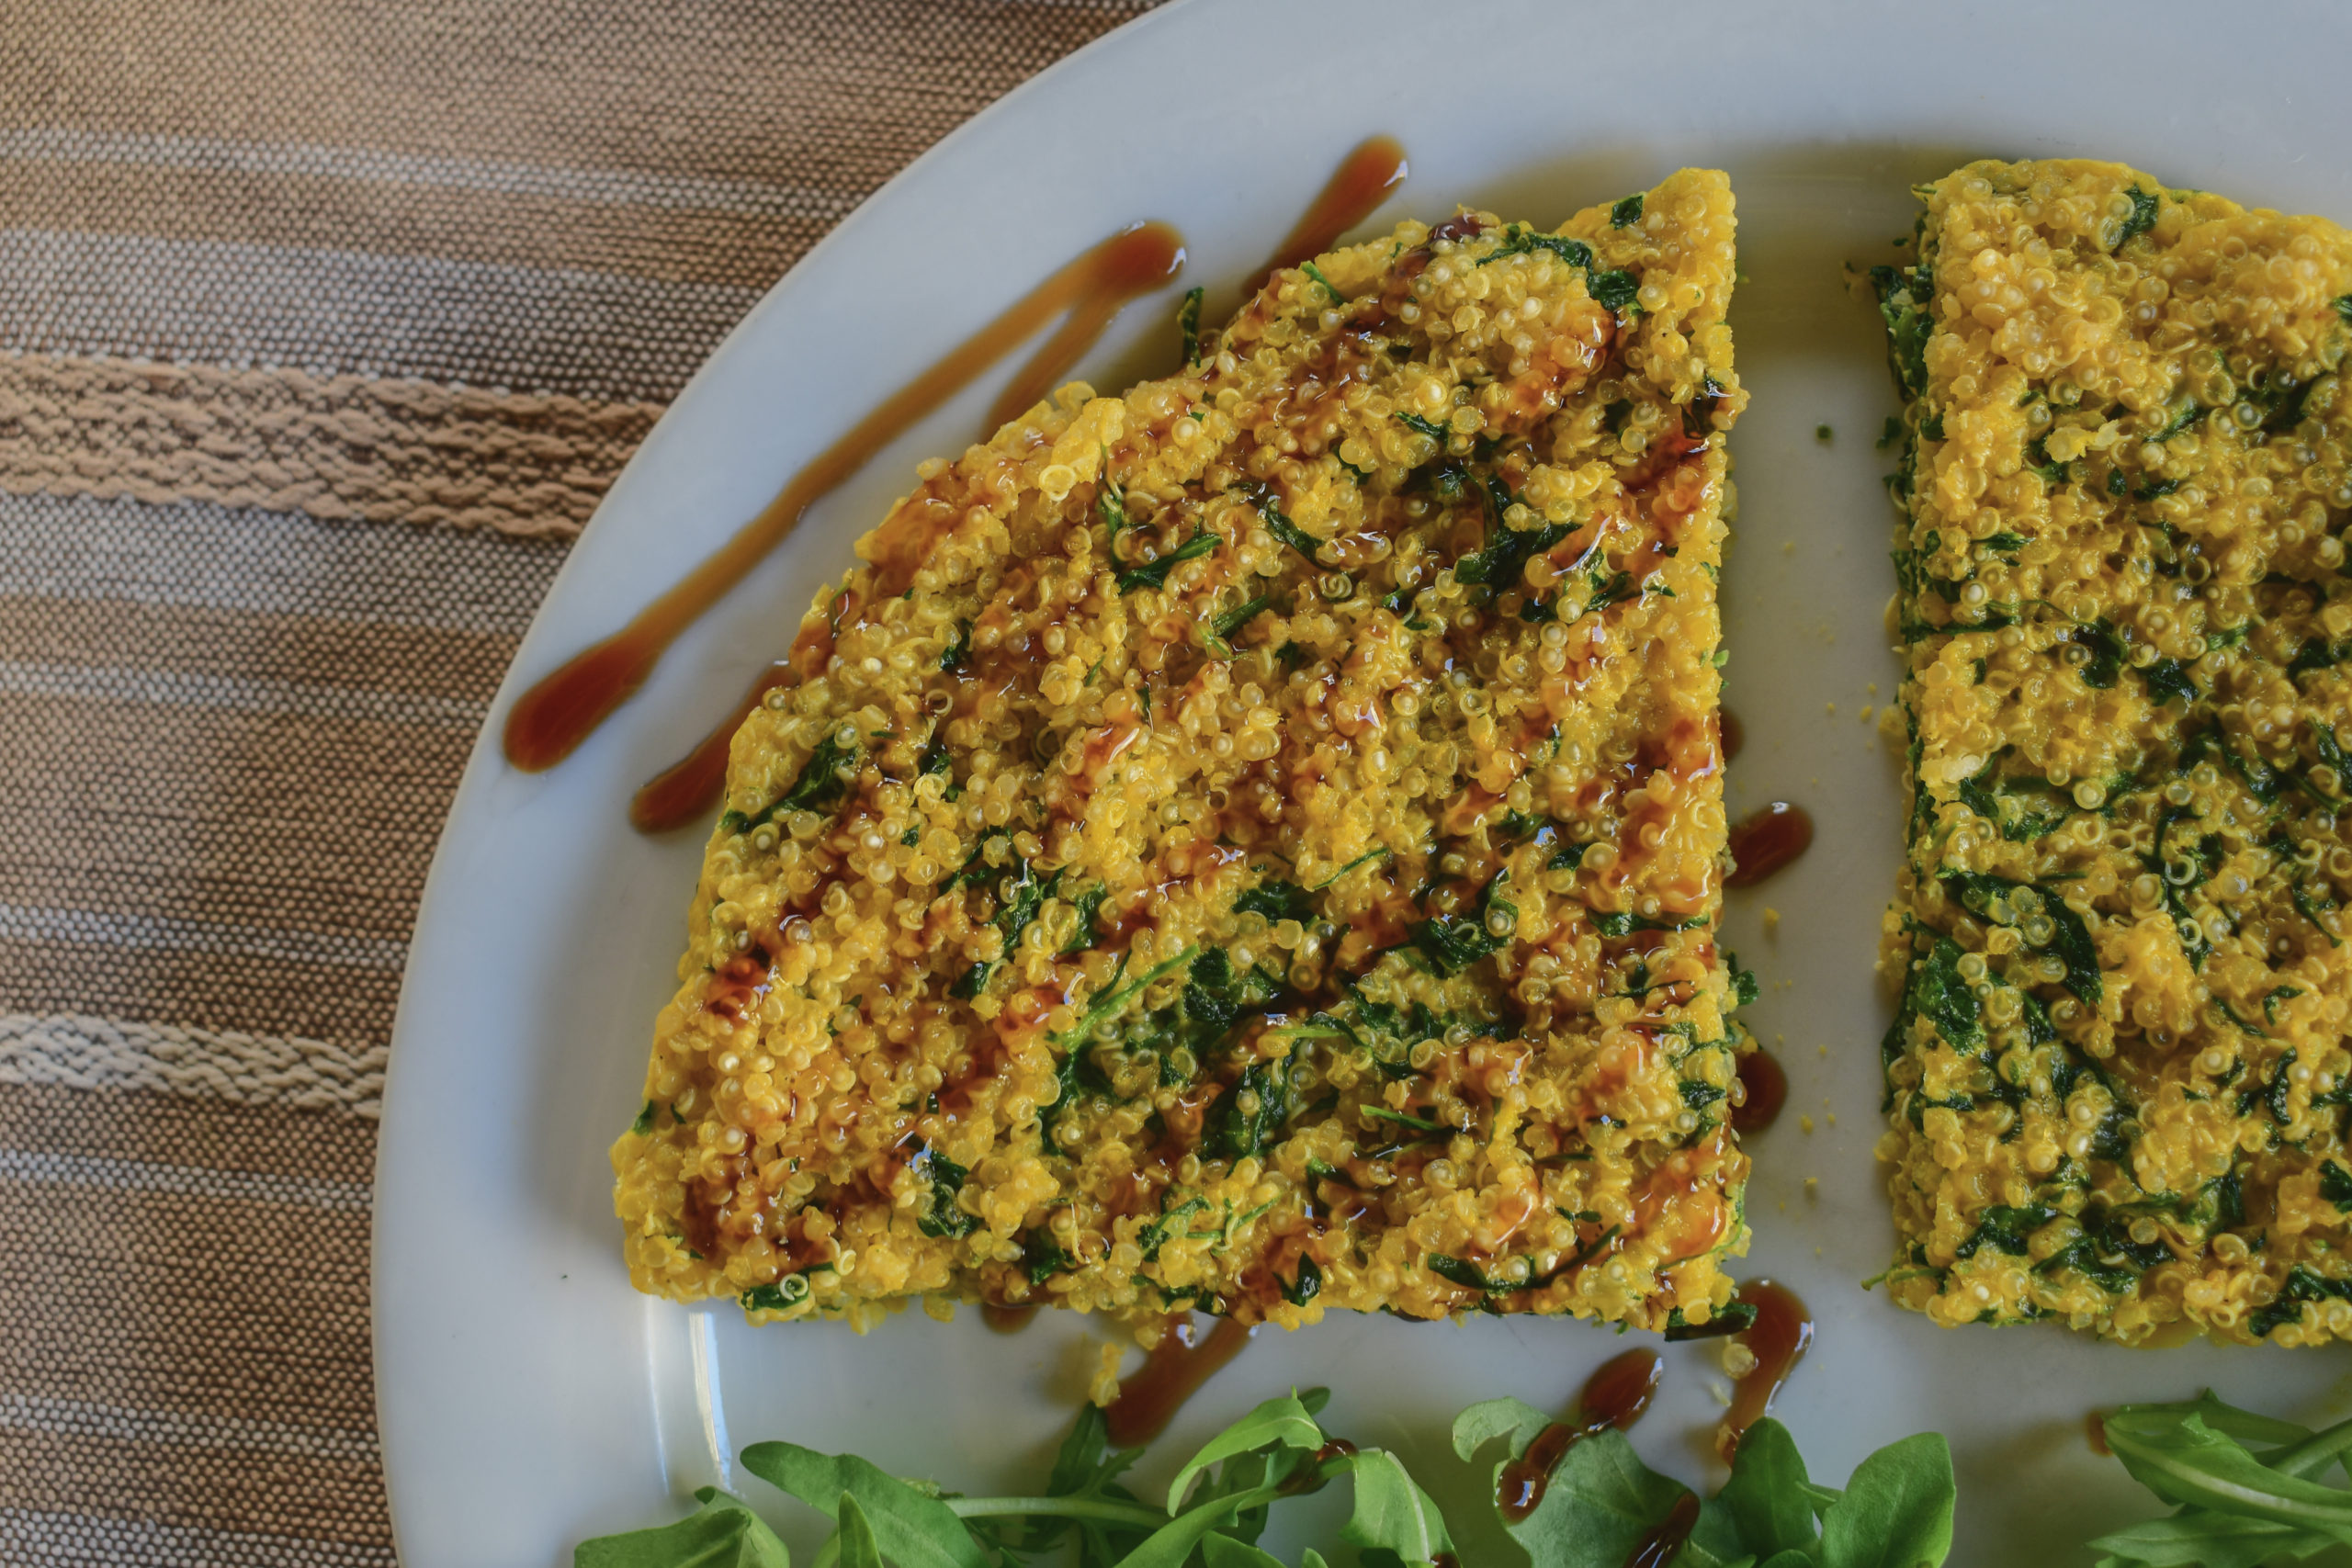 Oven baked rocket salad and quinoa omelette